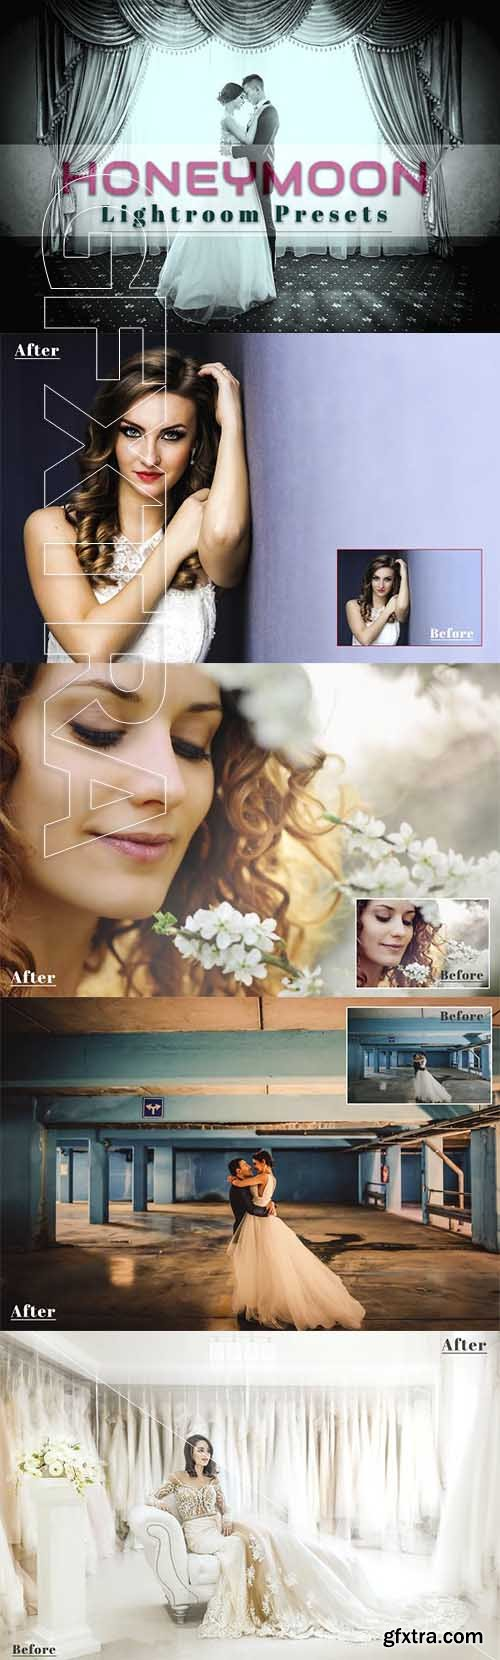 CreativeMarket - Honeymoon Lightroom Presets 3020955